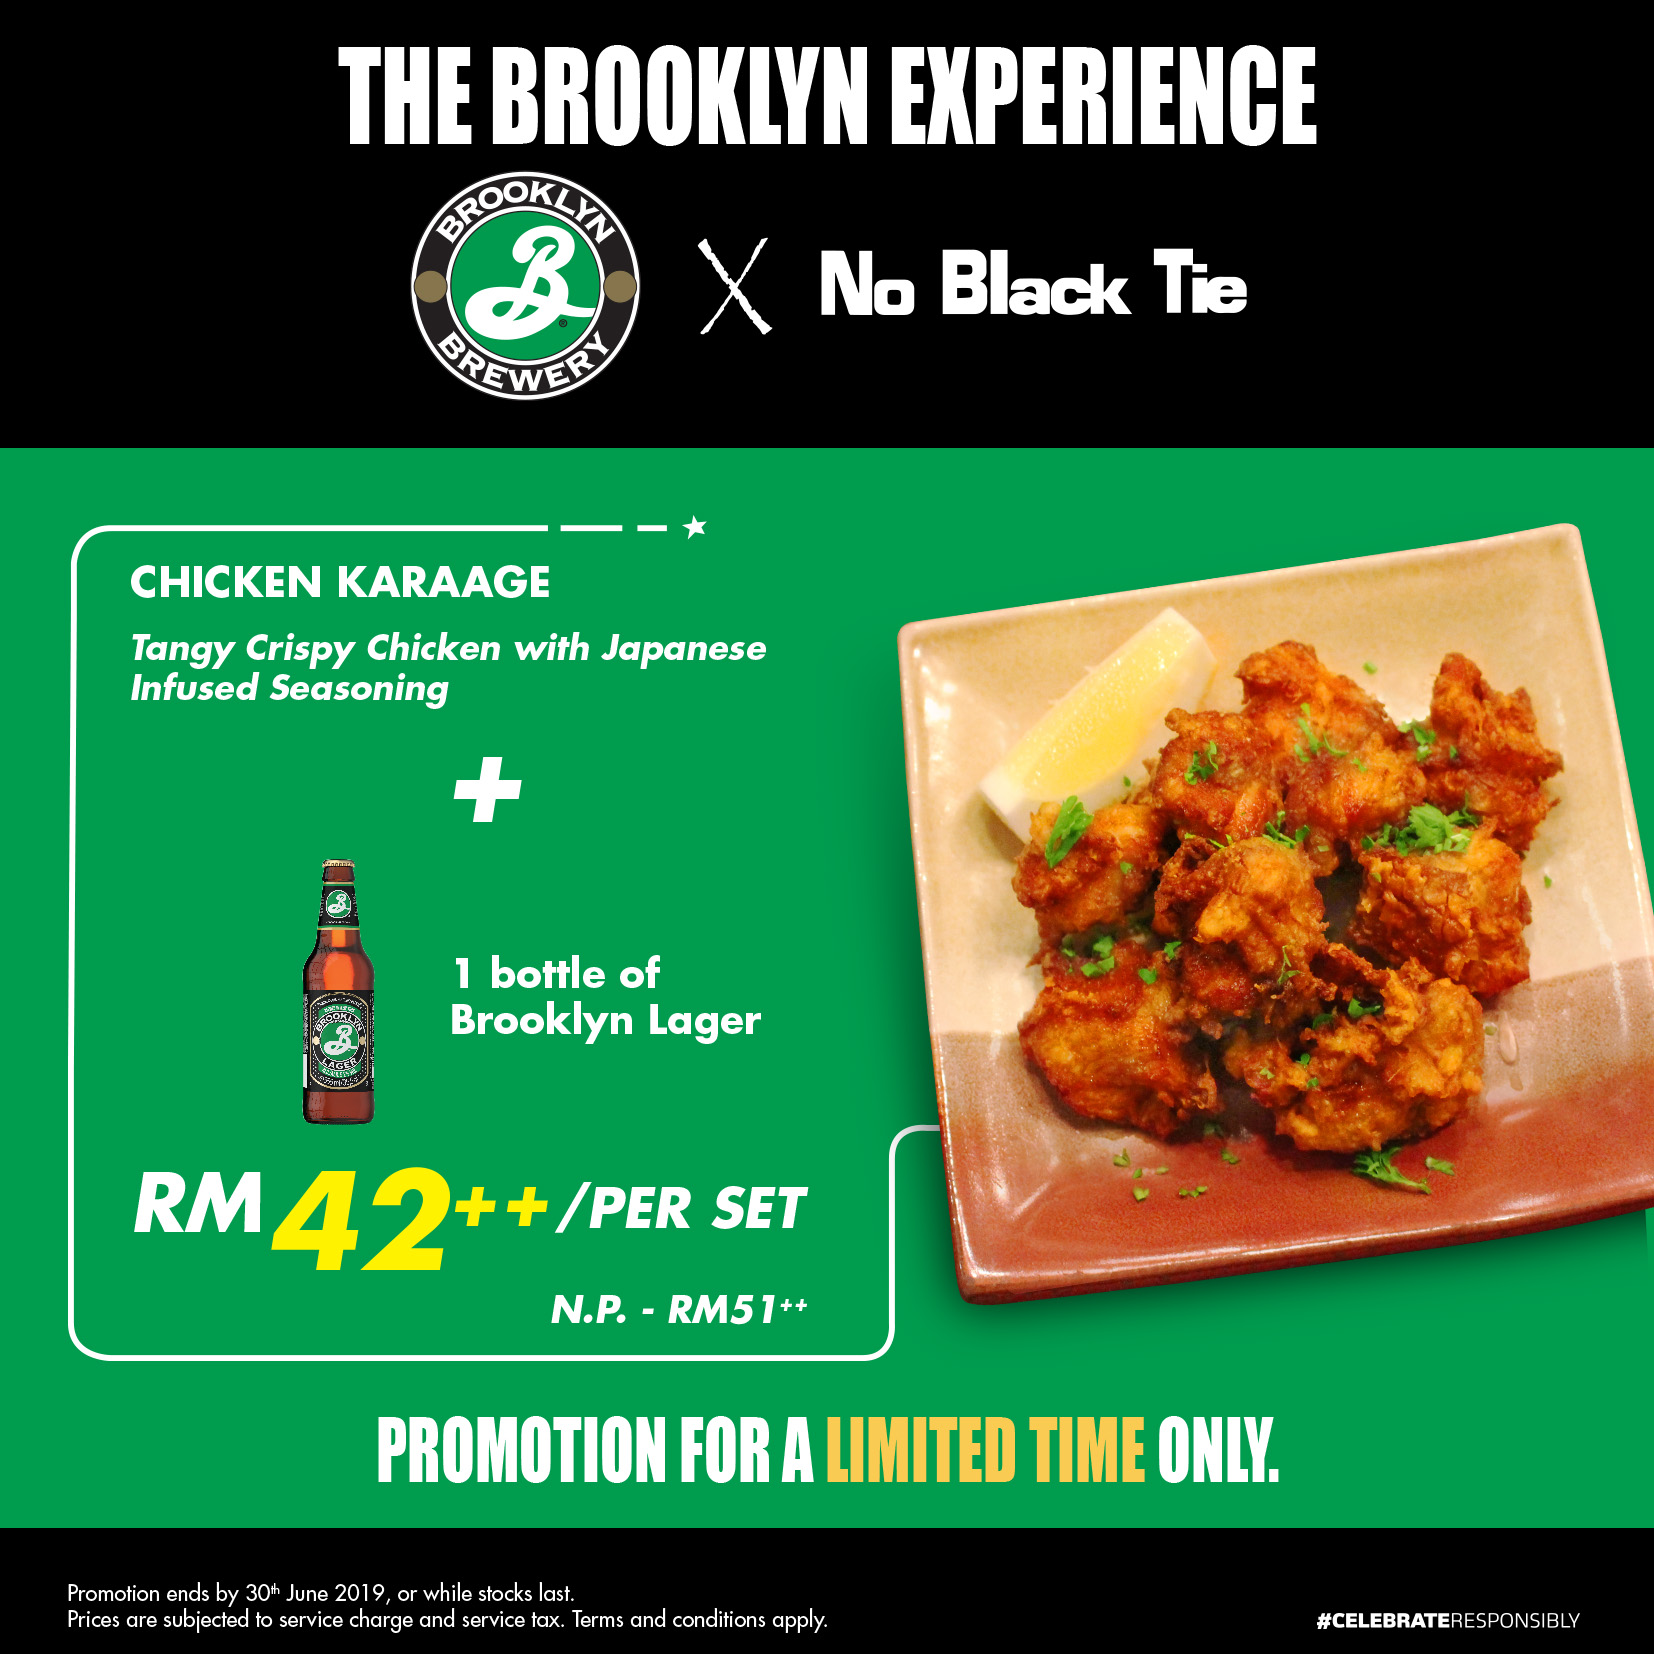 https://i1.wp.com/www.noblacktie.com.my/web/wp-content/uploads/2019/04/Brooklyn-NoBlackTie_FB-Posting_CHICKEN-KARAAGE_1654Wx1654Hpx_V1_FA-REF.jpg?resize=1170%2C2319&ssl=1